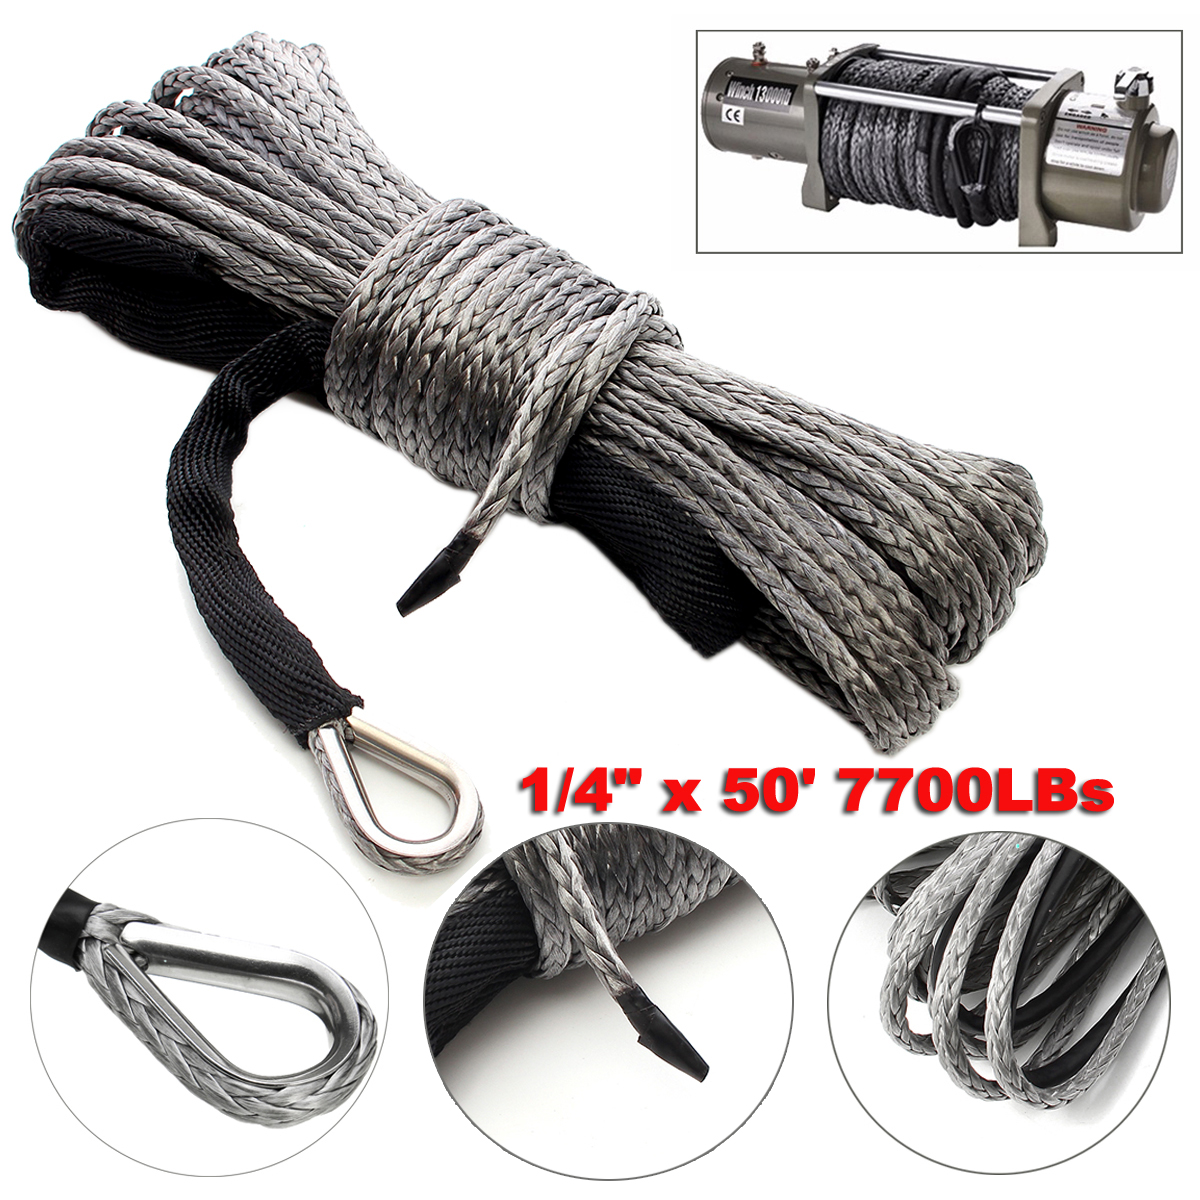 String-Line-Cable Winch-Rope Maintenance-String 7700lbs Off-Road Synthetic with Sheath